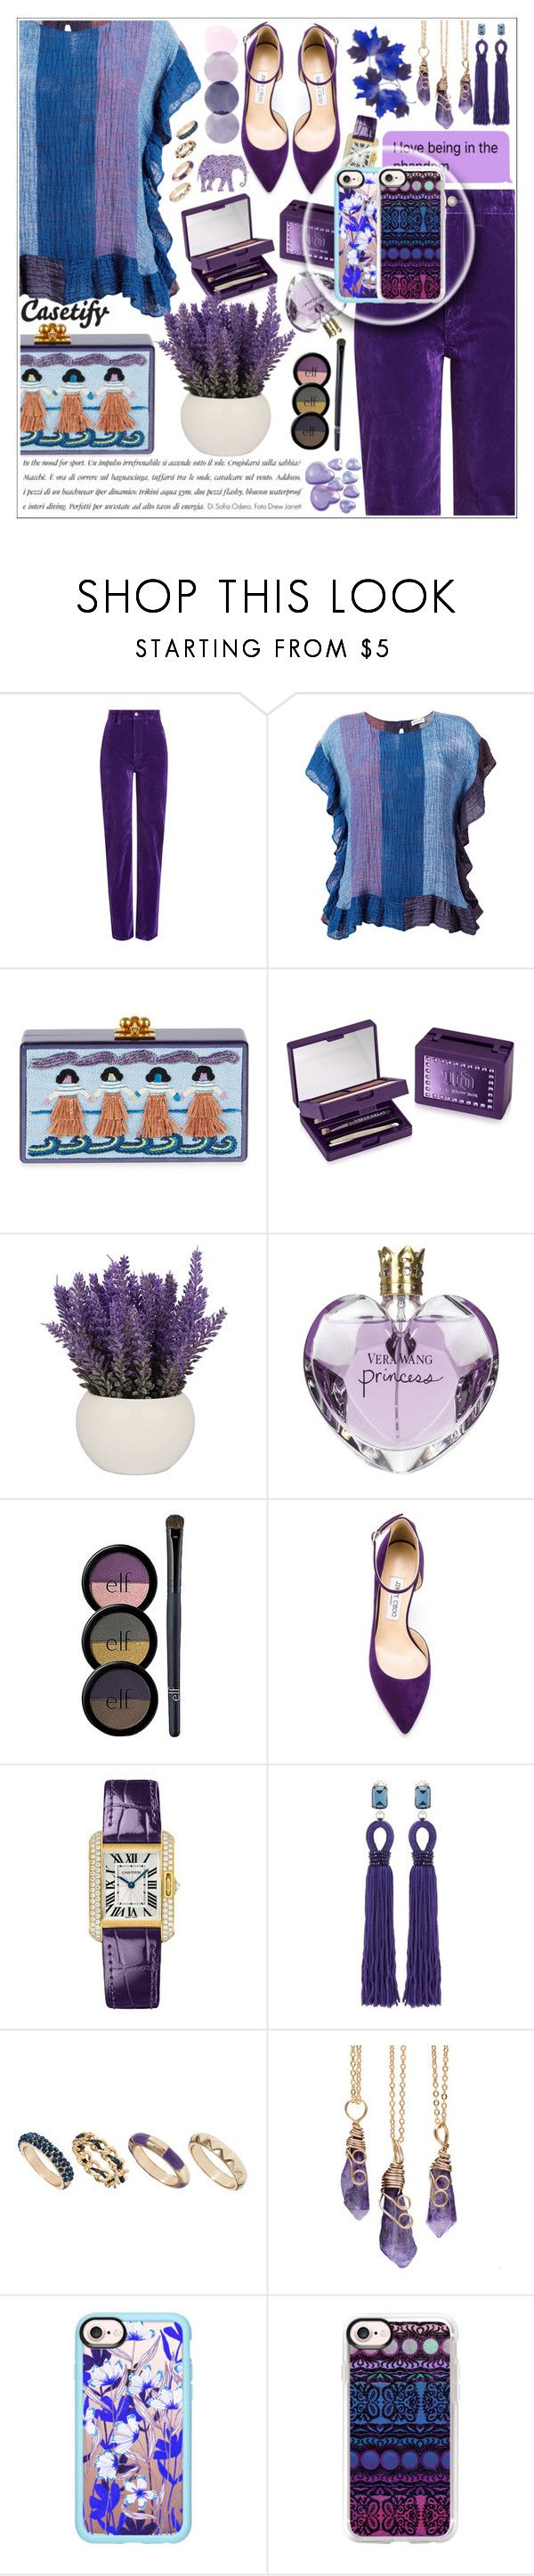 """""""Casetify NO4 ♥ ♥"""" by av-anul ❤ liked on Polyvore featuring Marc Jacobs, MASSCOB, Edie Parker, Urban Decay, Vera Wang, e.l.f., Jimmy Choo, Cartier, Oscar de la Renta and ASOS"""